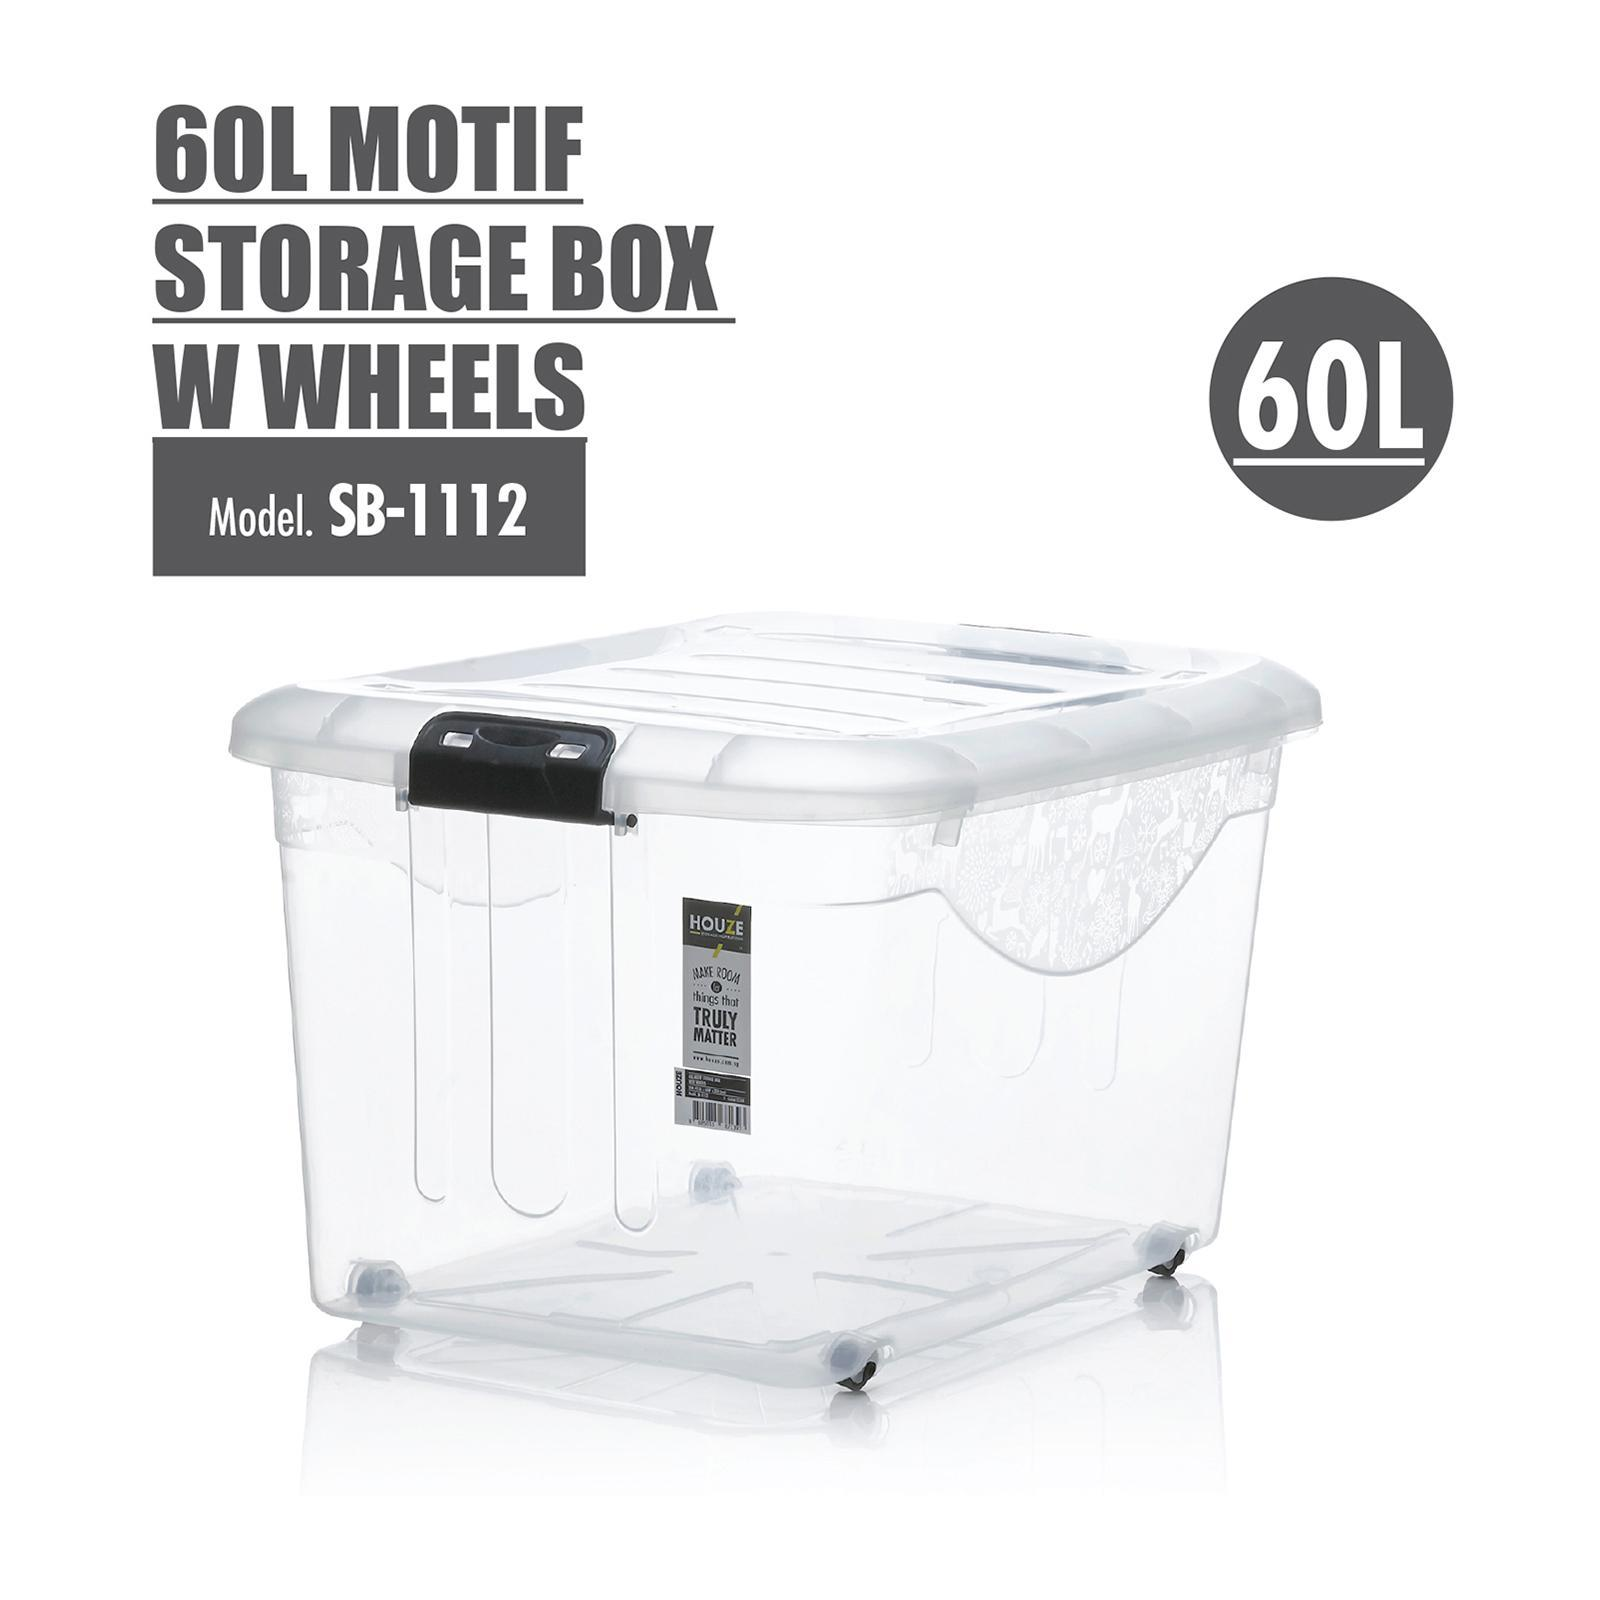 HOUZE 60L Motif Storage Box With Wheels